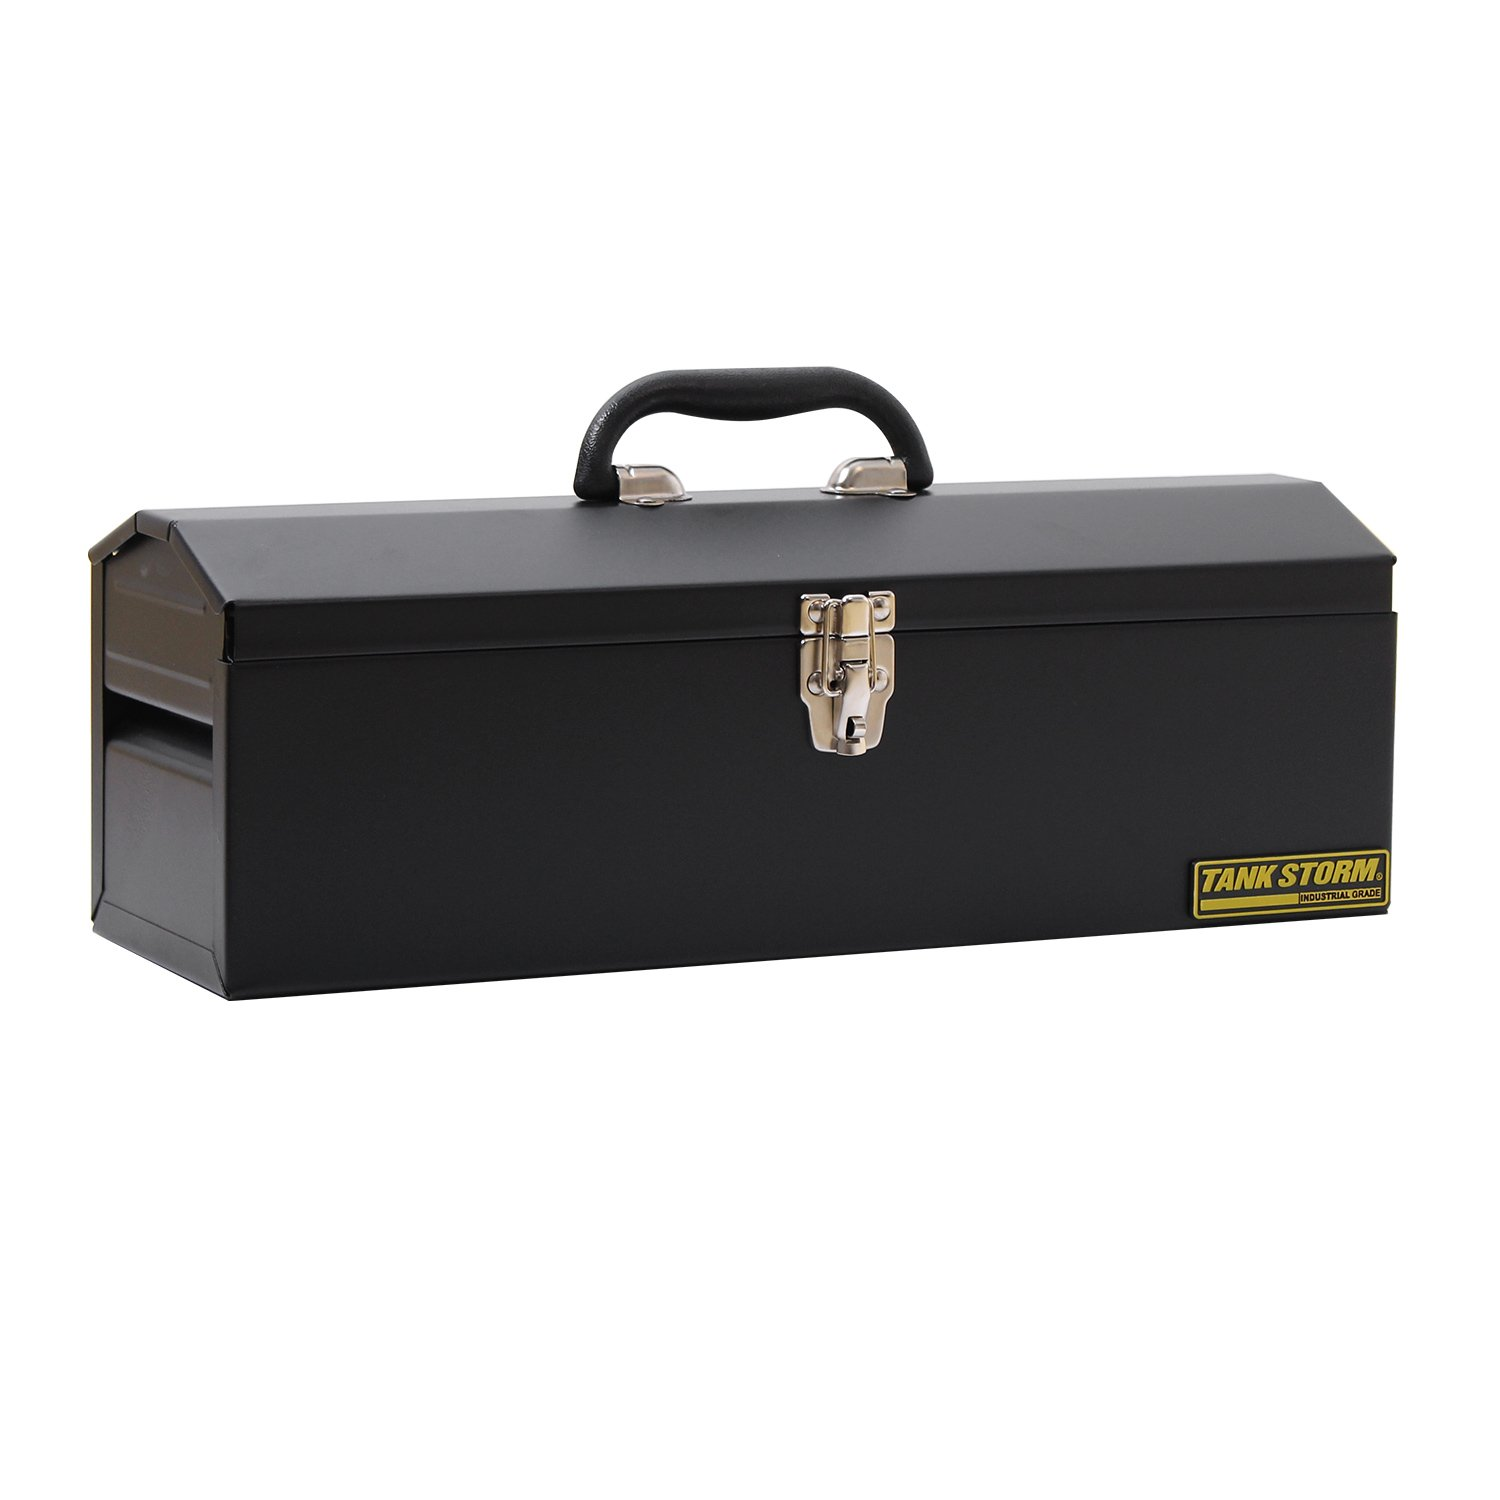 TANKSTORM Portable Steel Tool Box,black (x11)